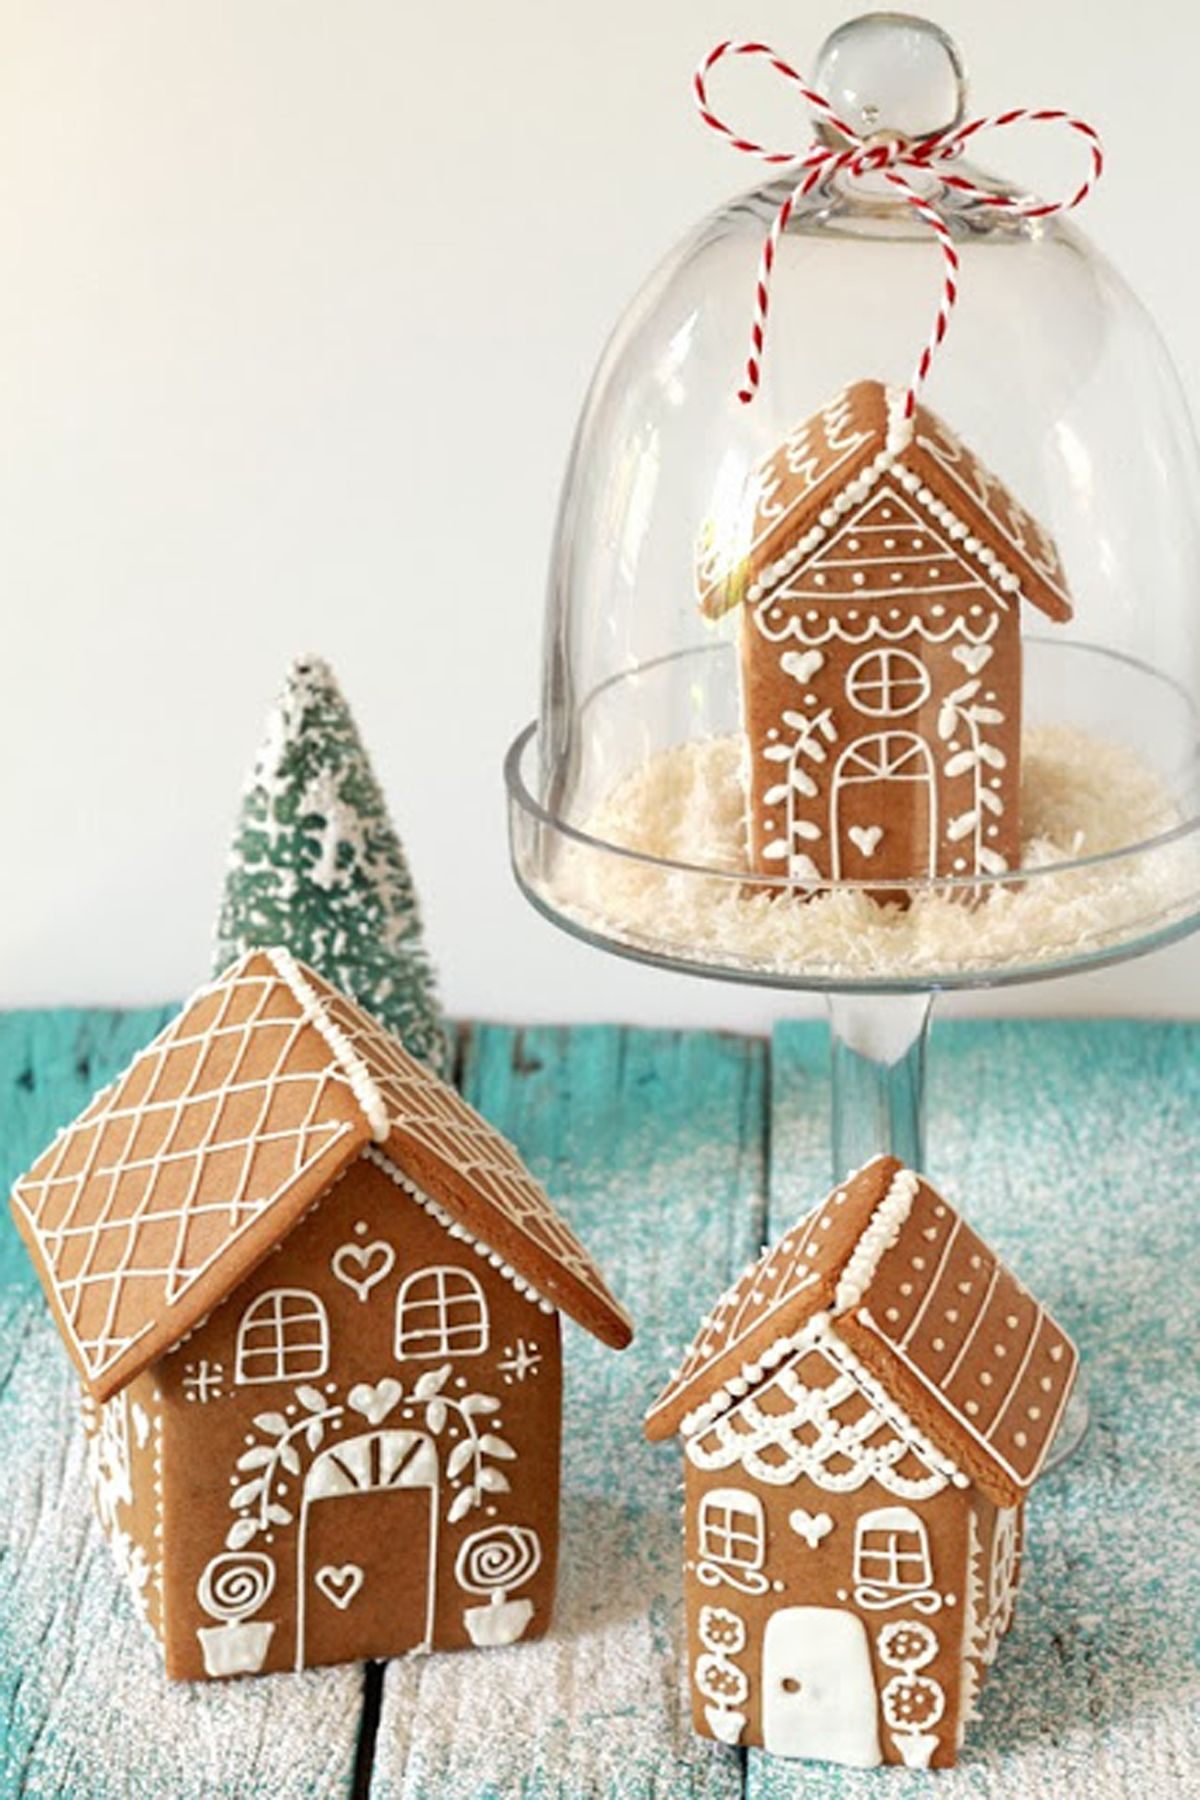 of the cutest country gingerbread house ideas lebkuchen backenholiday bakingchristmas also best houses images on pinterest xmas christmas rh